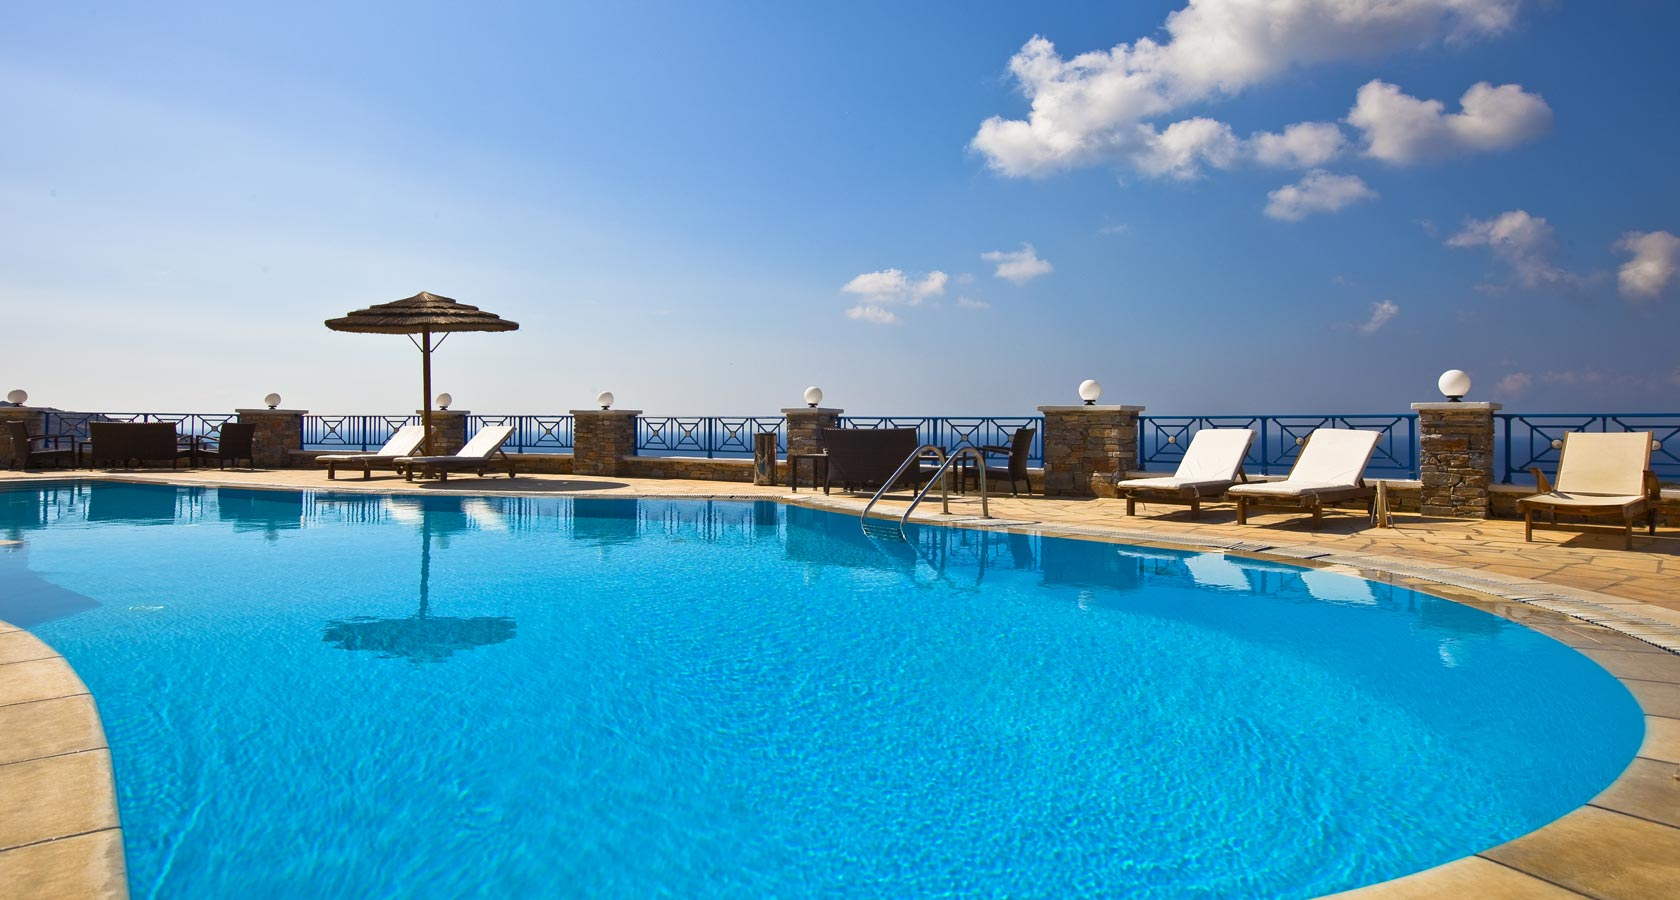 The Pool of Hermes Hotel in Ios island Greece